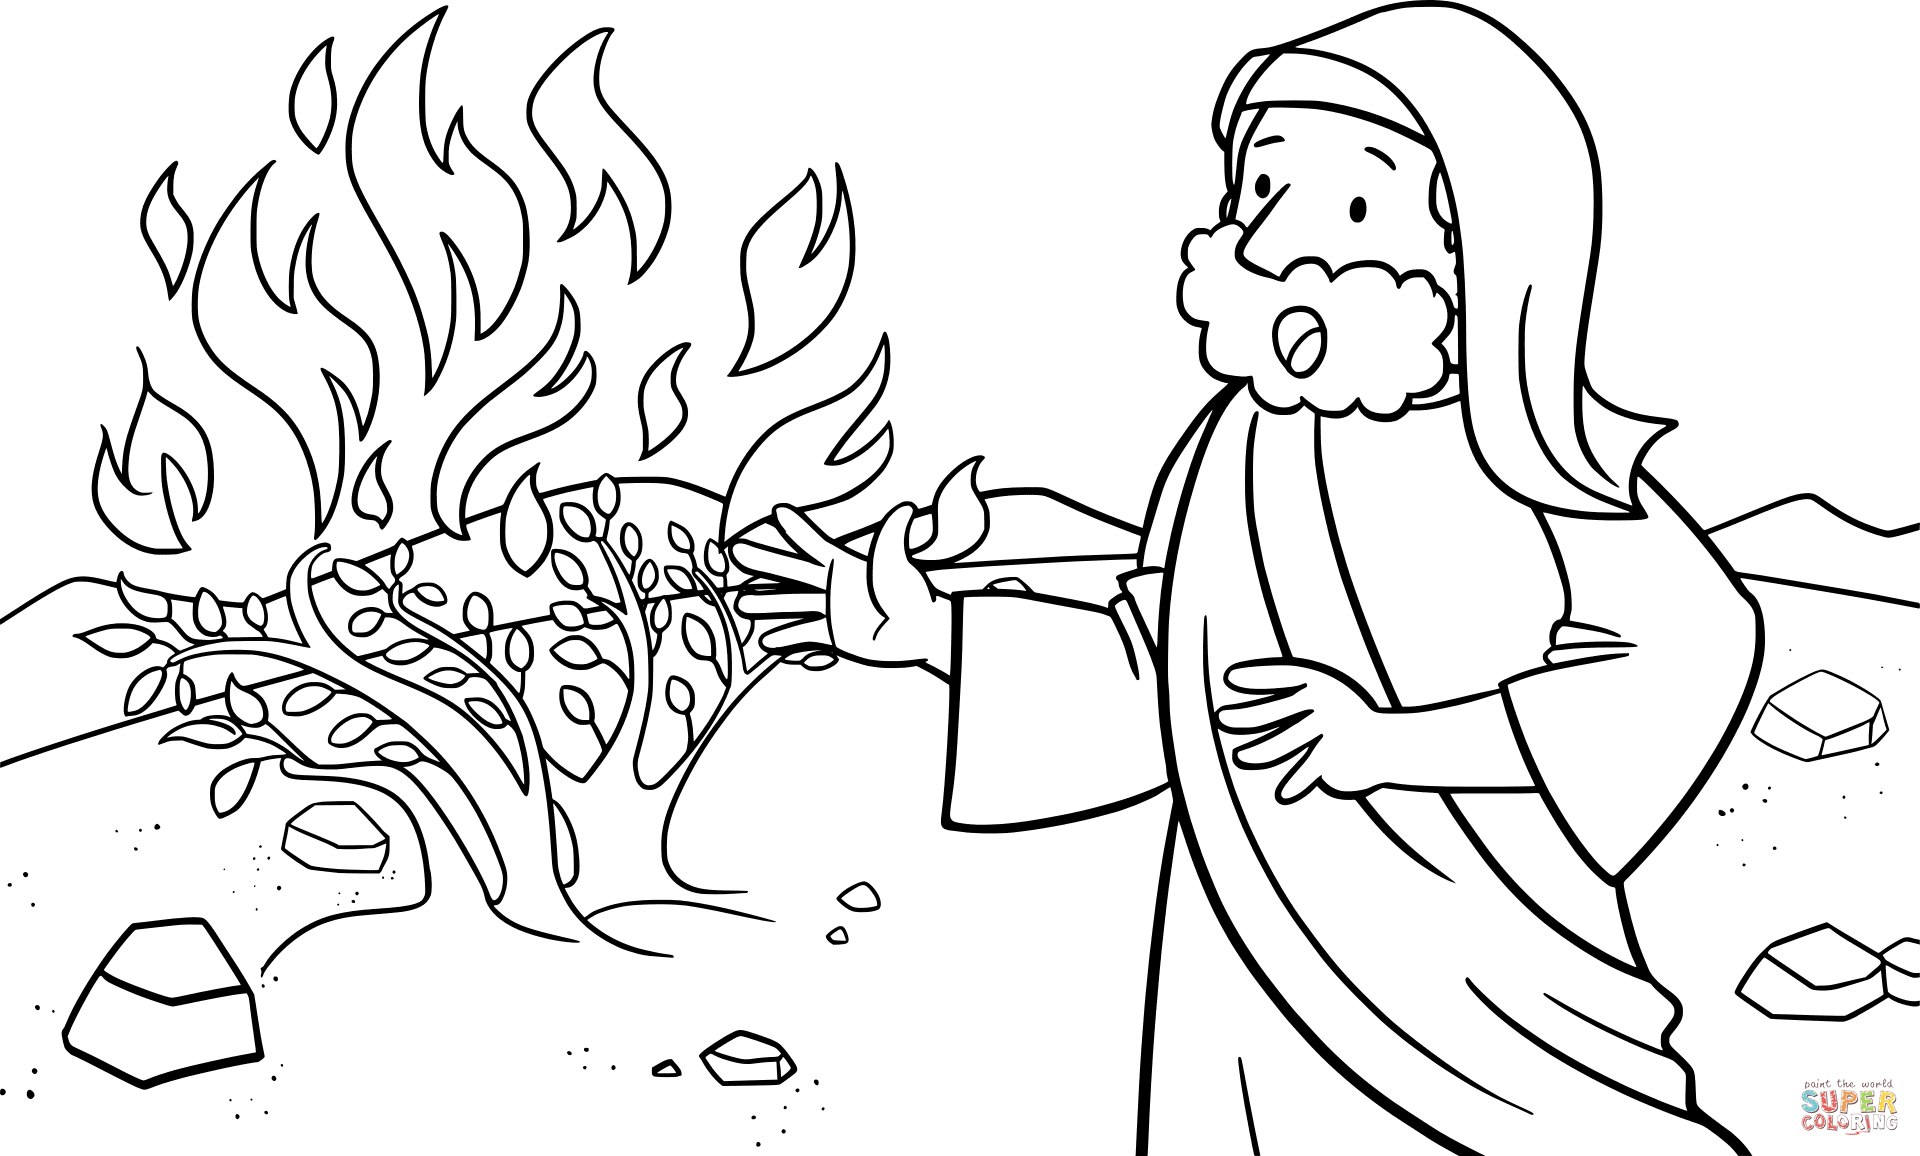 moses coloring pages printable moses coloring pages for kids cool2bkids moses coloring pages